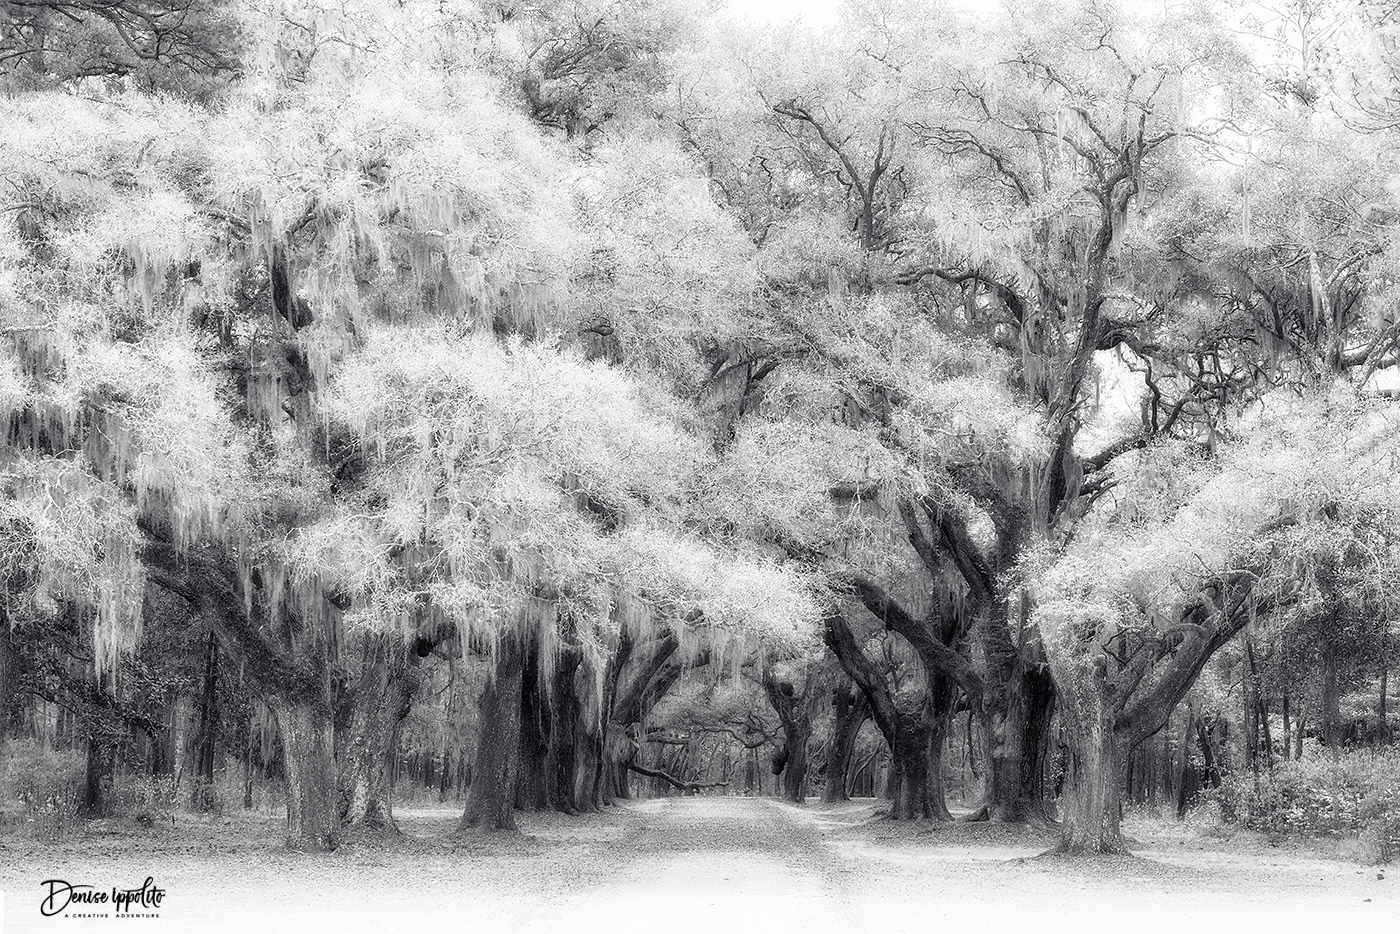 Infrared Conversion